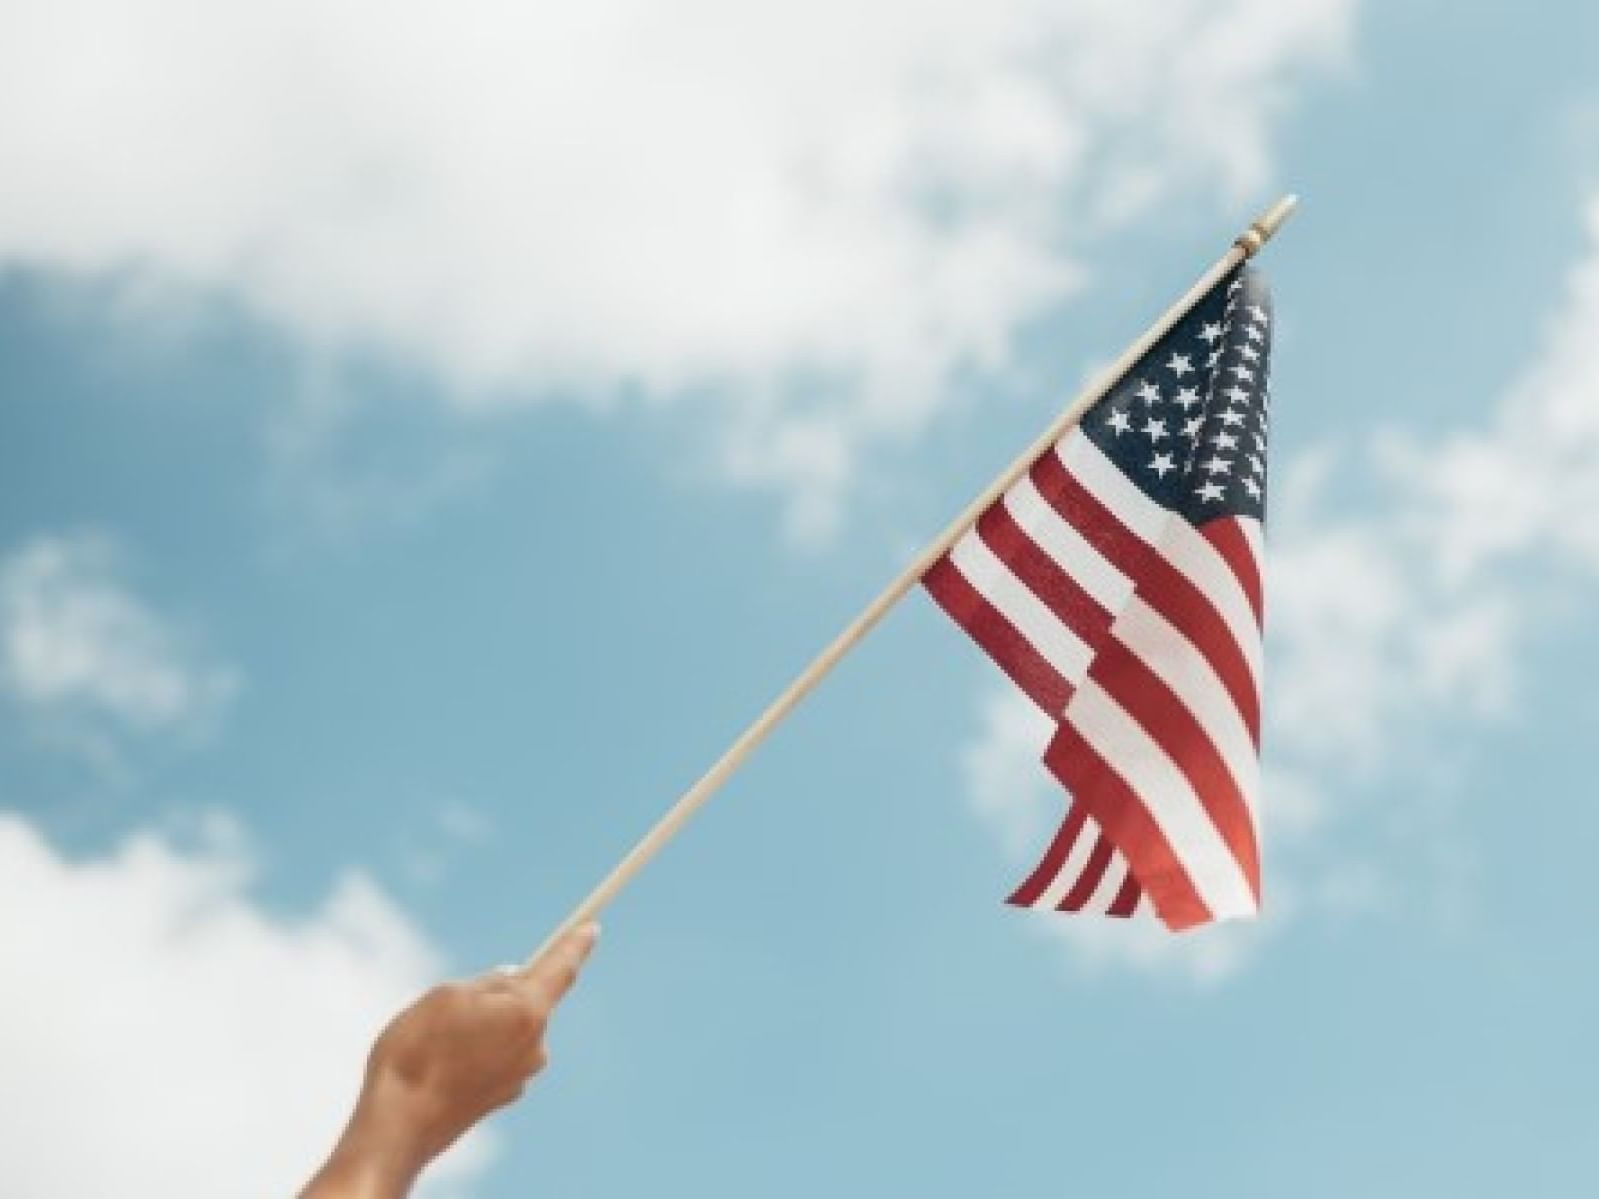 A closeup picture of a person holding the American flag